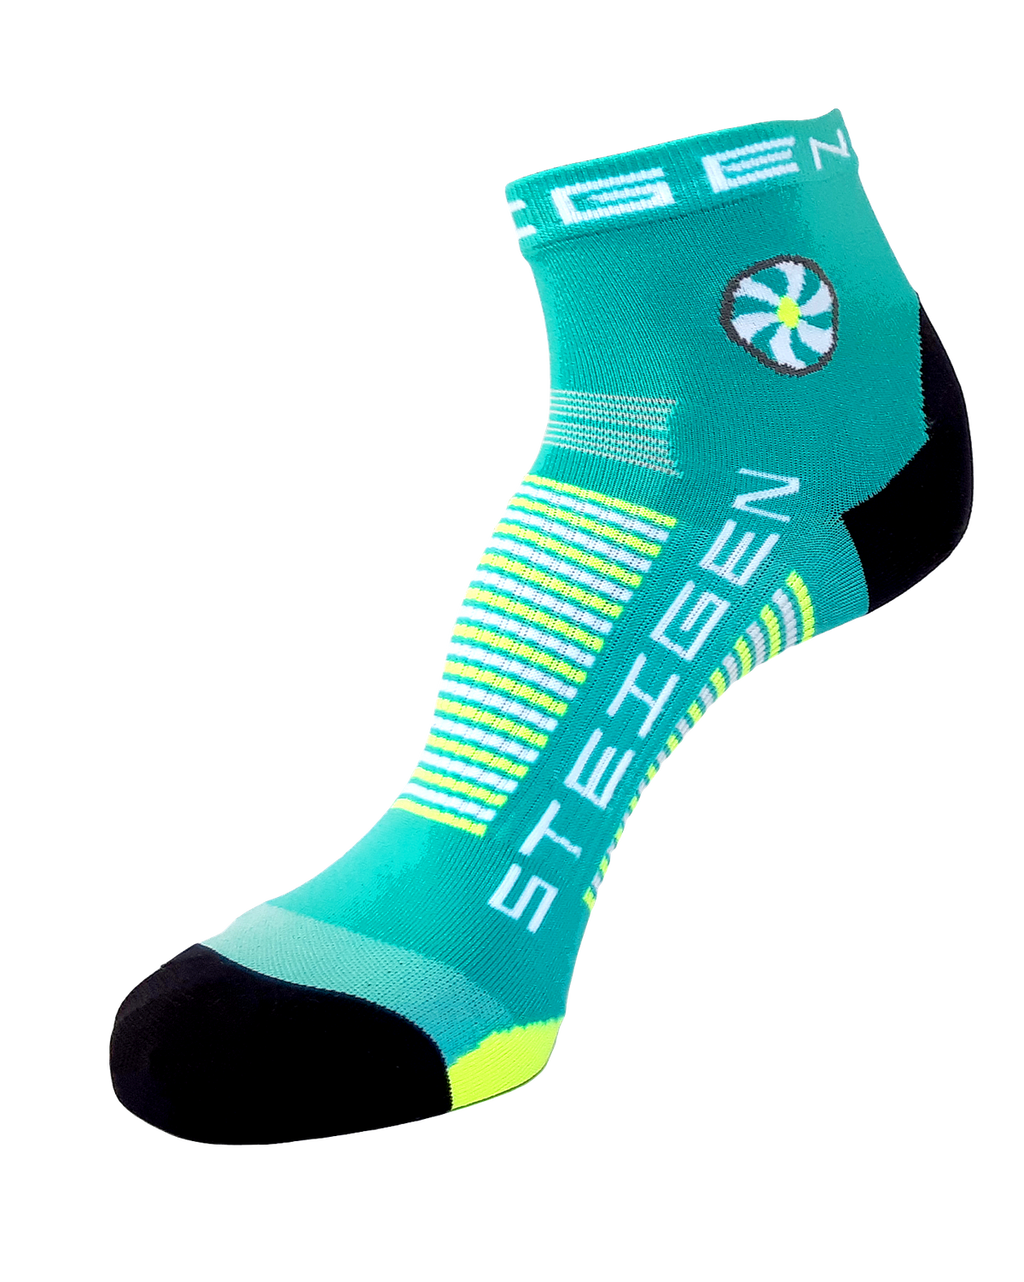 STEIGEN Premium Running Socks - 1/4 Length<br> Seaside